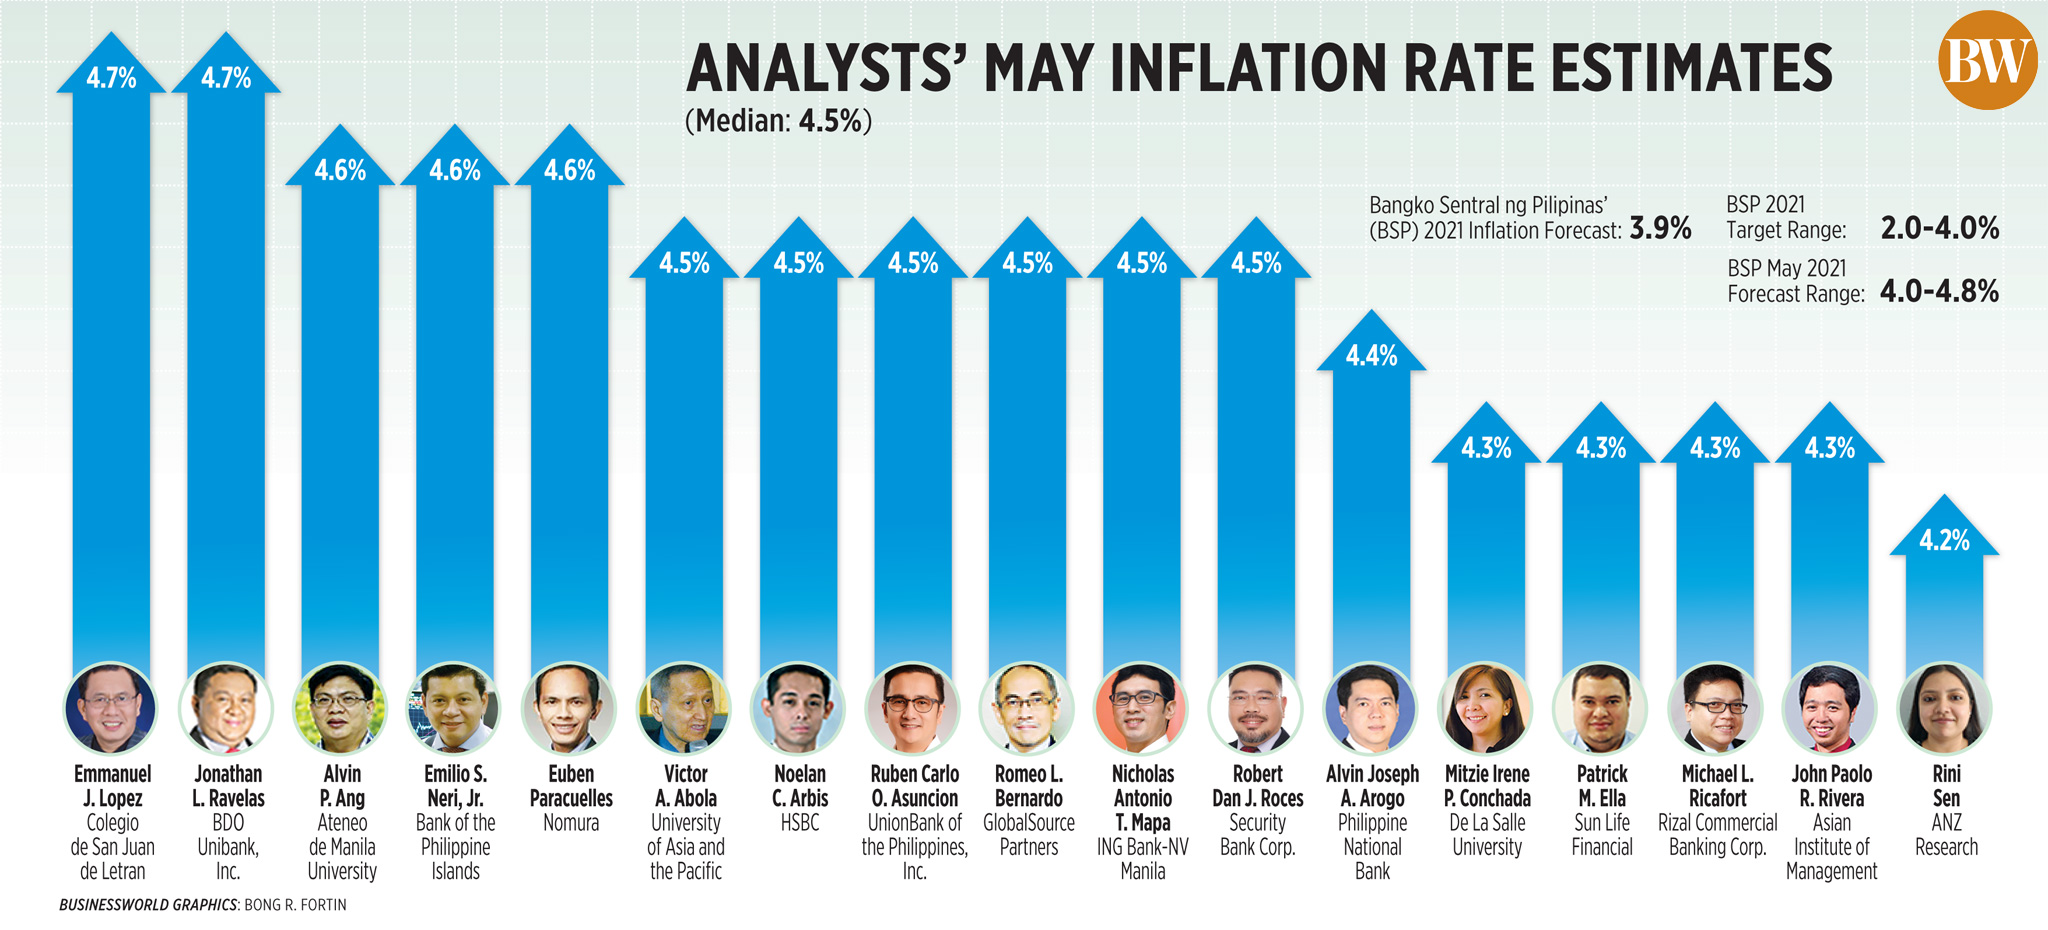 Analysts' May Inflation Estimates (2021)-New